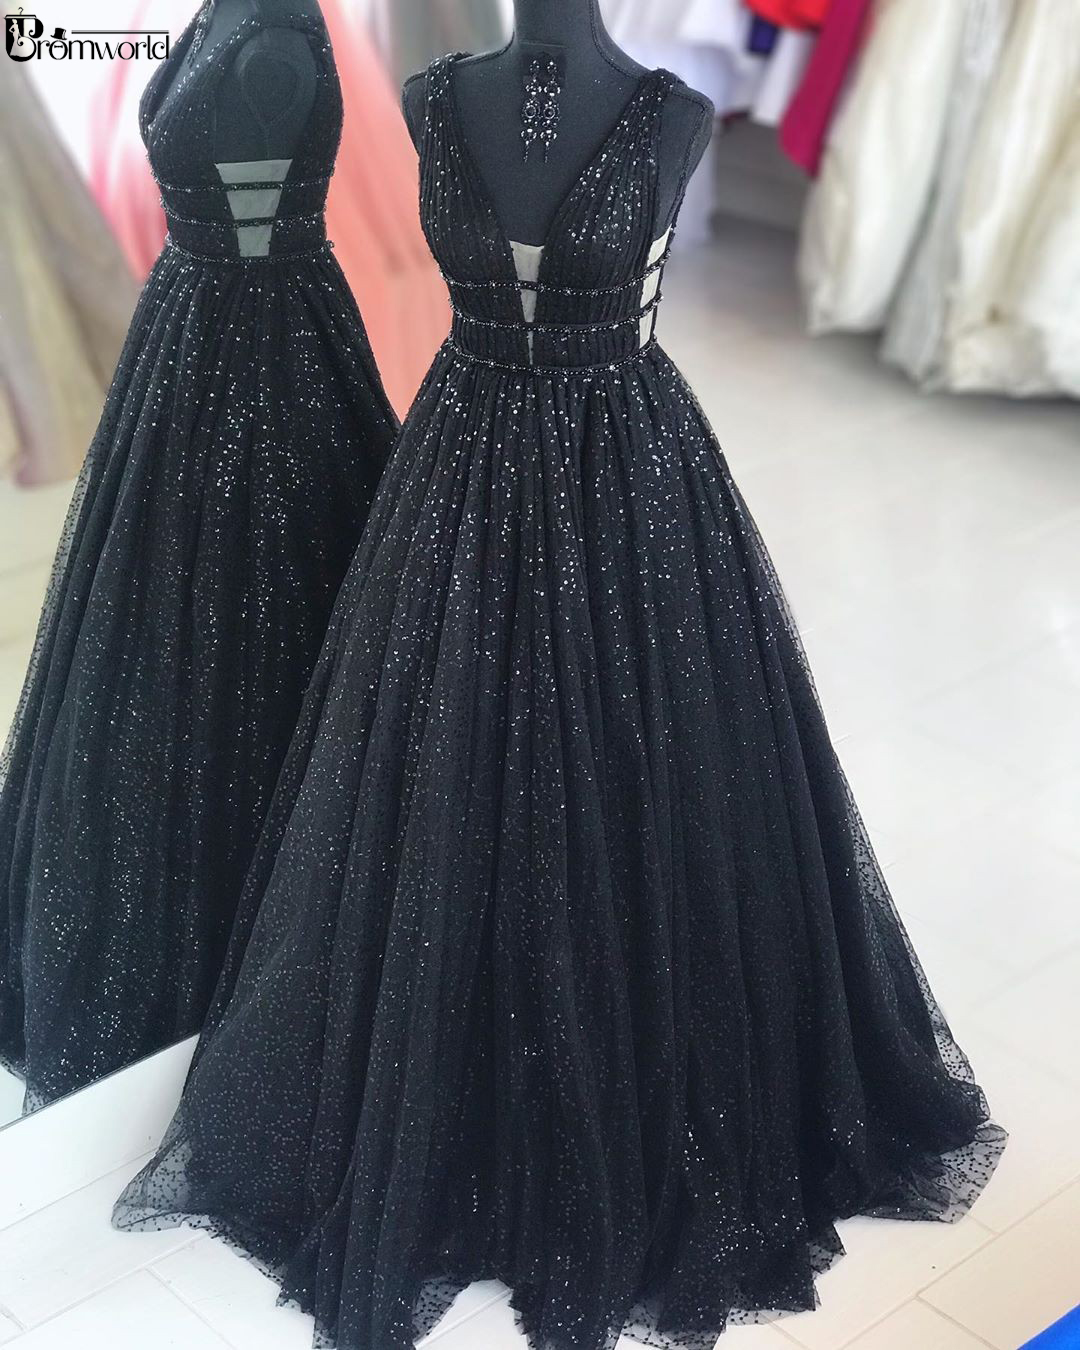 Bling Bing V-Neck Black Evening Dress 2019 A-Line Sequin Beaded Formal Evening Gowns Real Pictures Party Prom Dresses Long